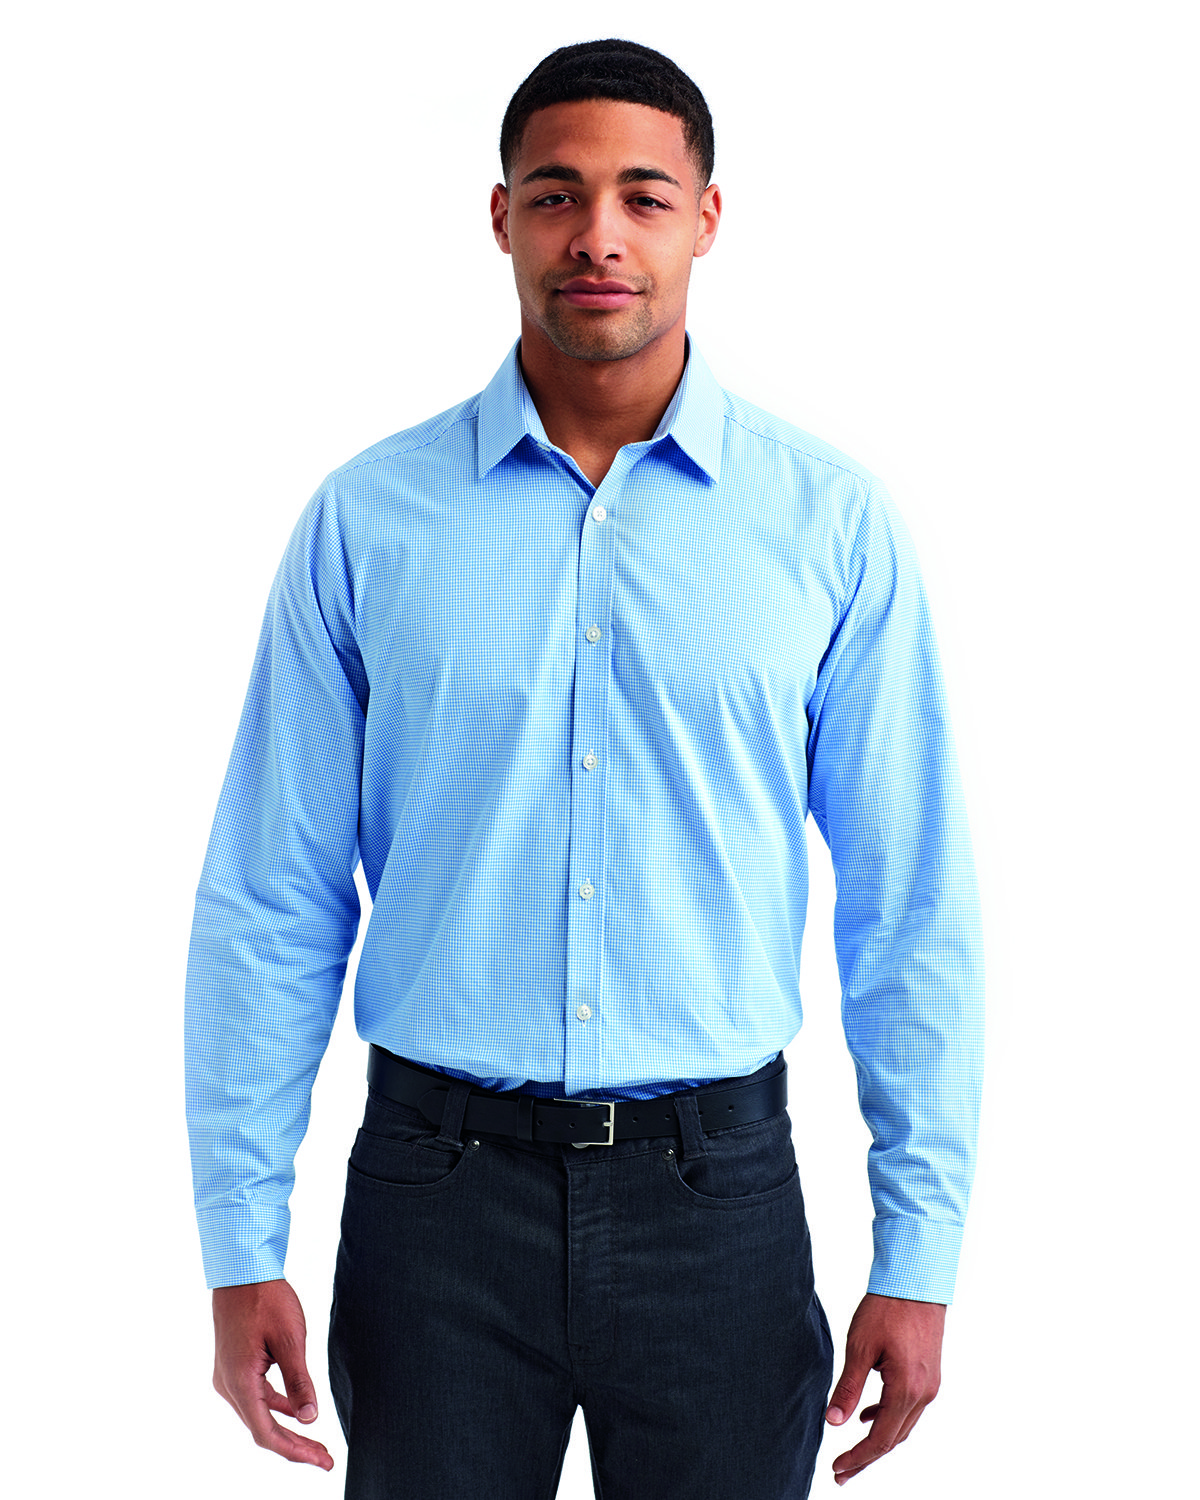 Artisan Collection by Reprime Men's Microcheck Gingham Long-Sleeve Cotton Shirt LT BLUE/ WHITE